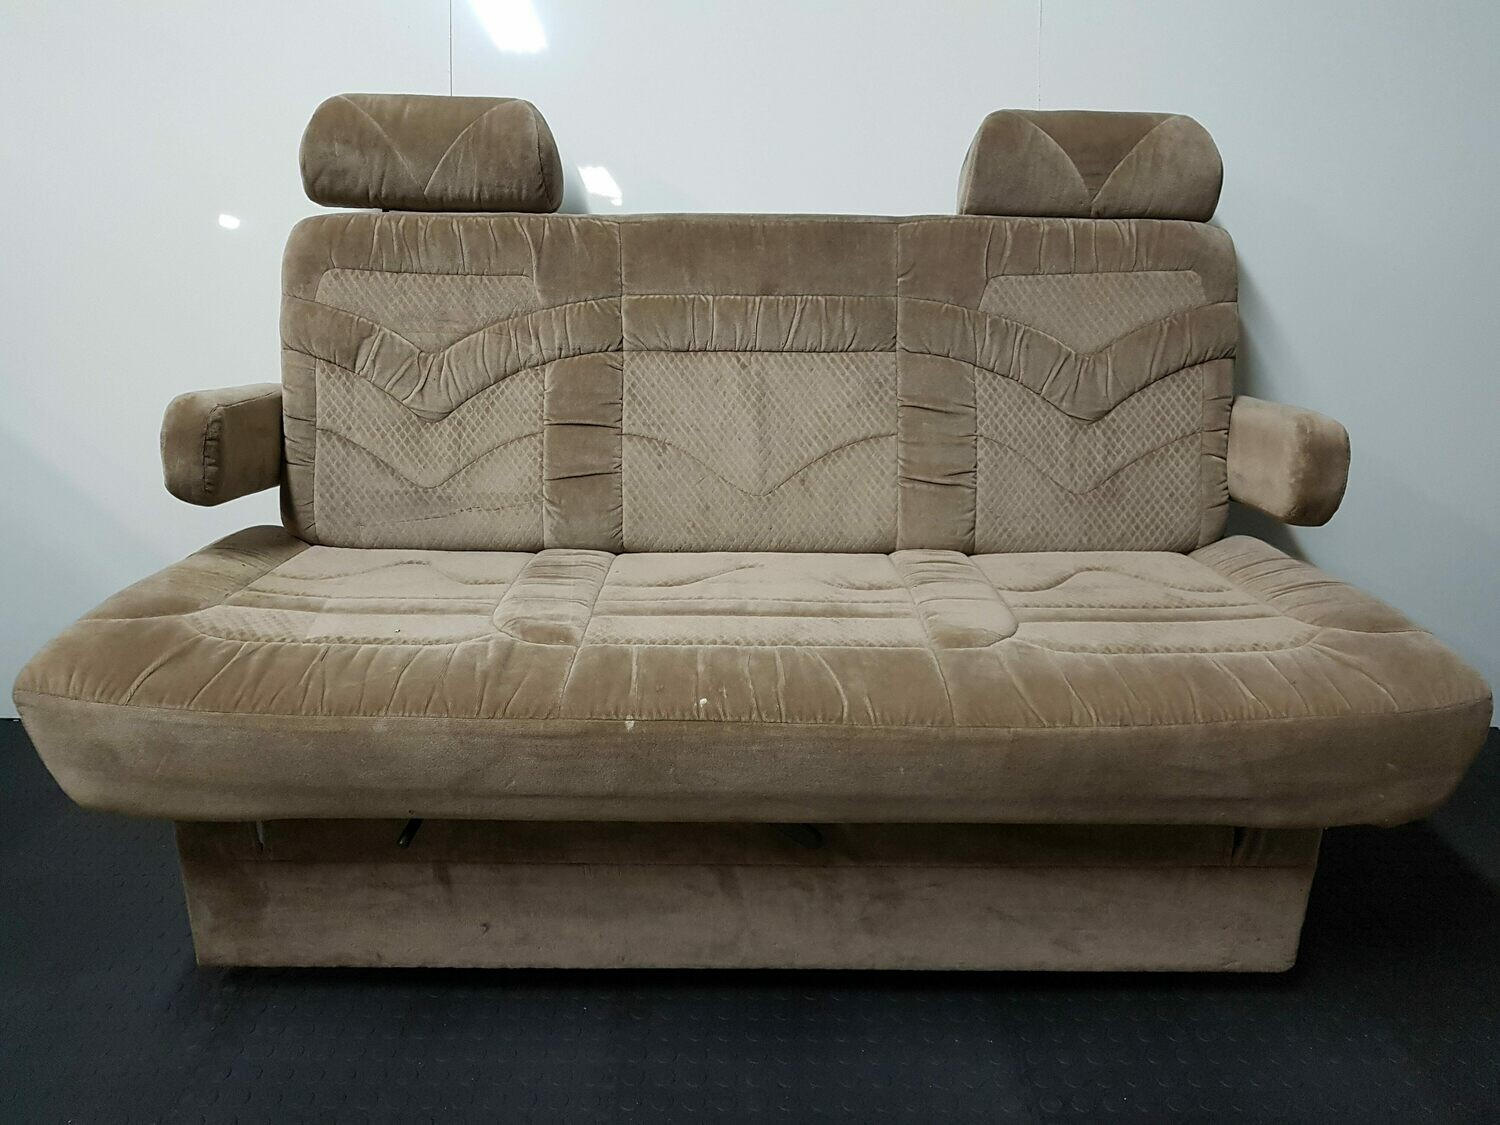 RV Sofabed